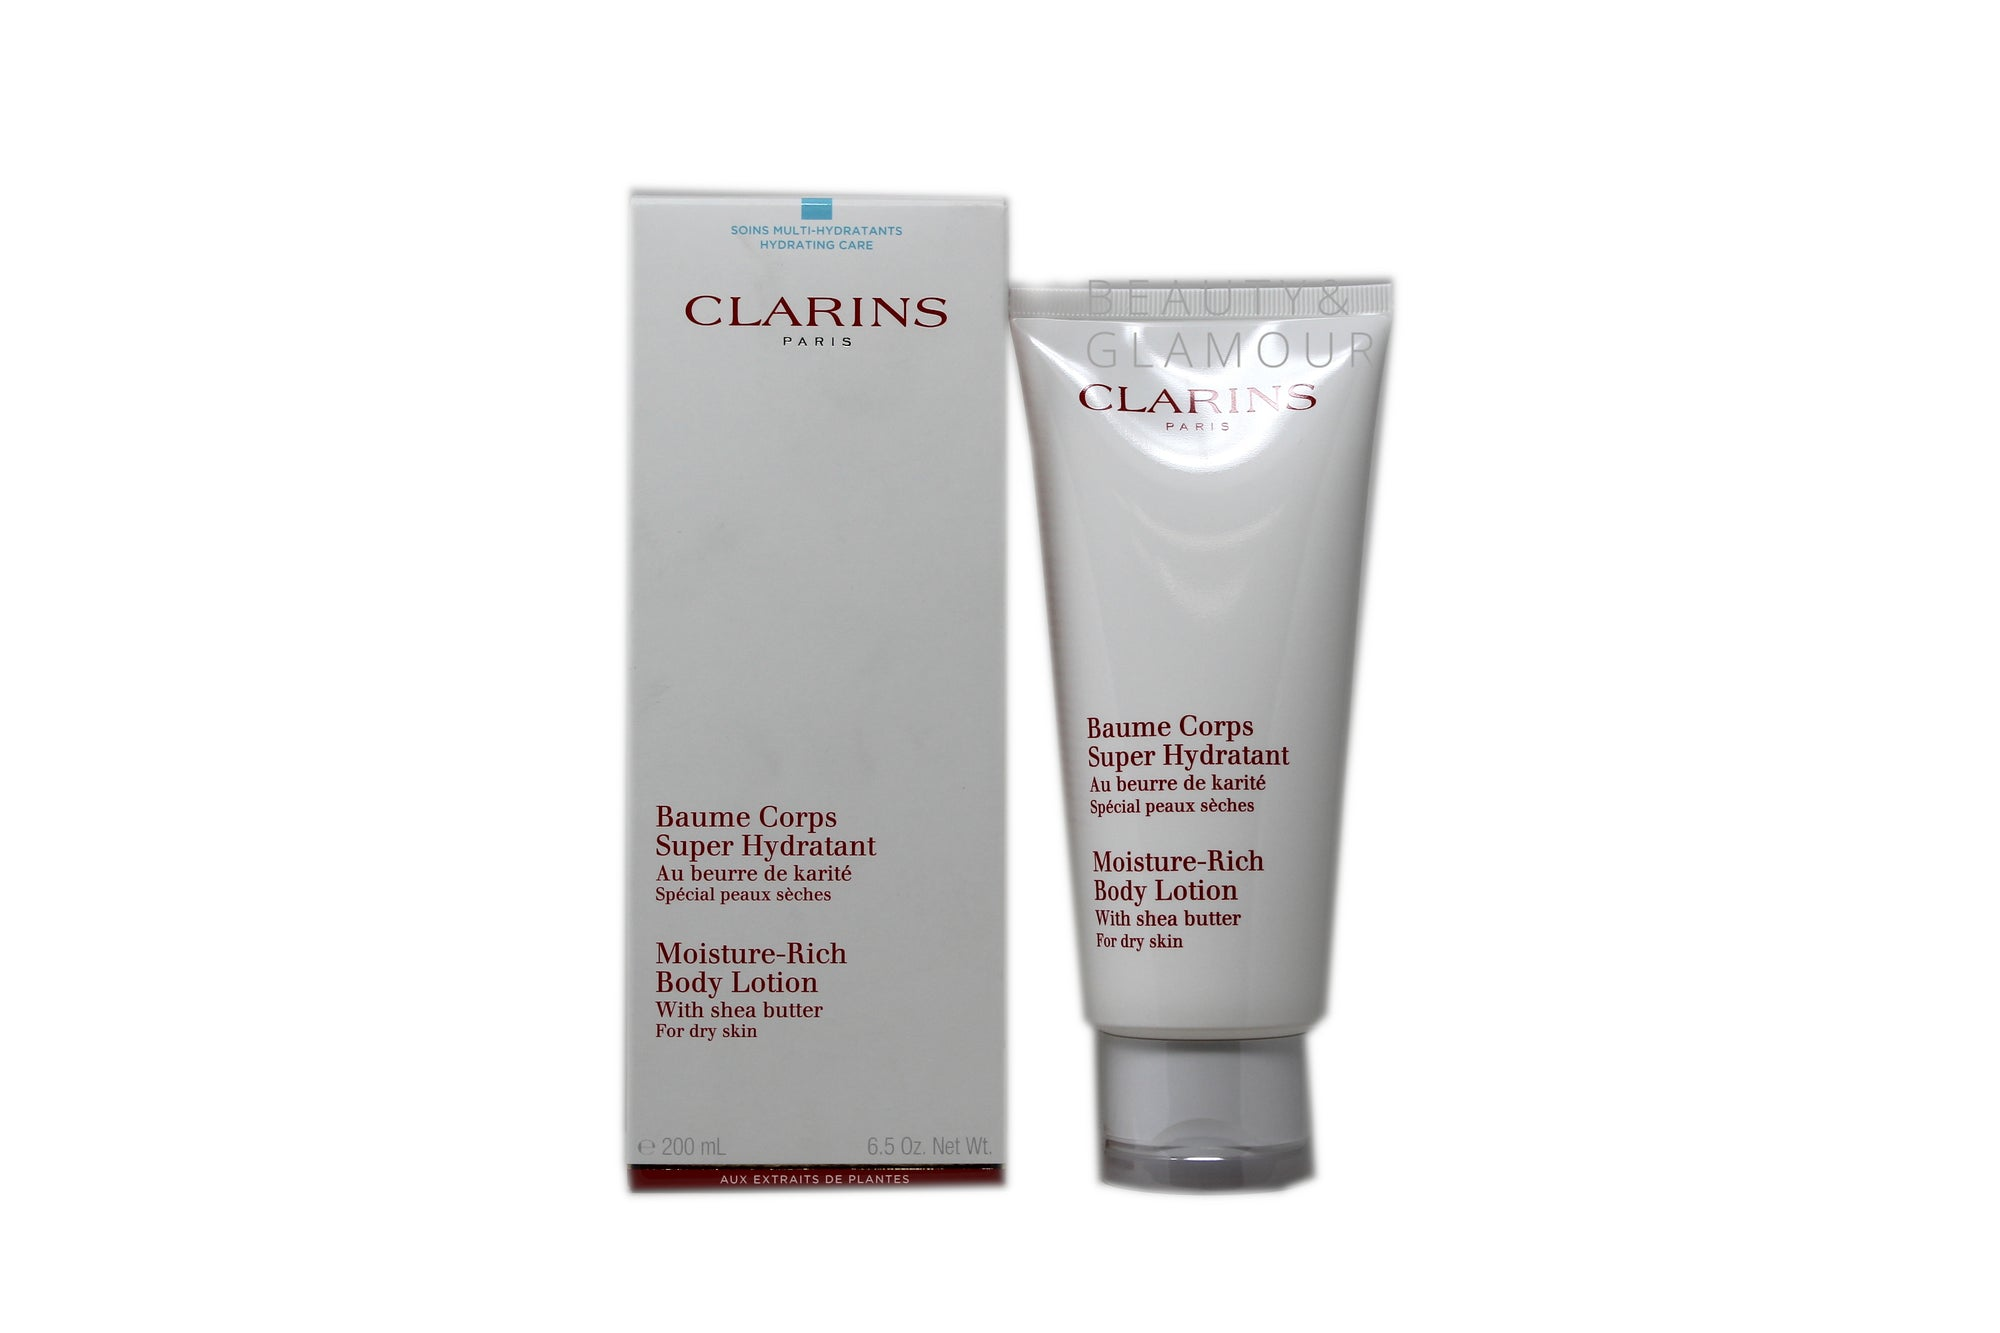 CLARINS MOISTURE-RICH BODY LOTION WITH SHEA BUTTER FOR DRY SKIN AVAILABLE SIZE: 200 ML/6.5 OZ.